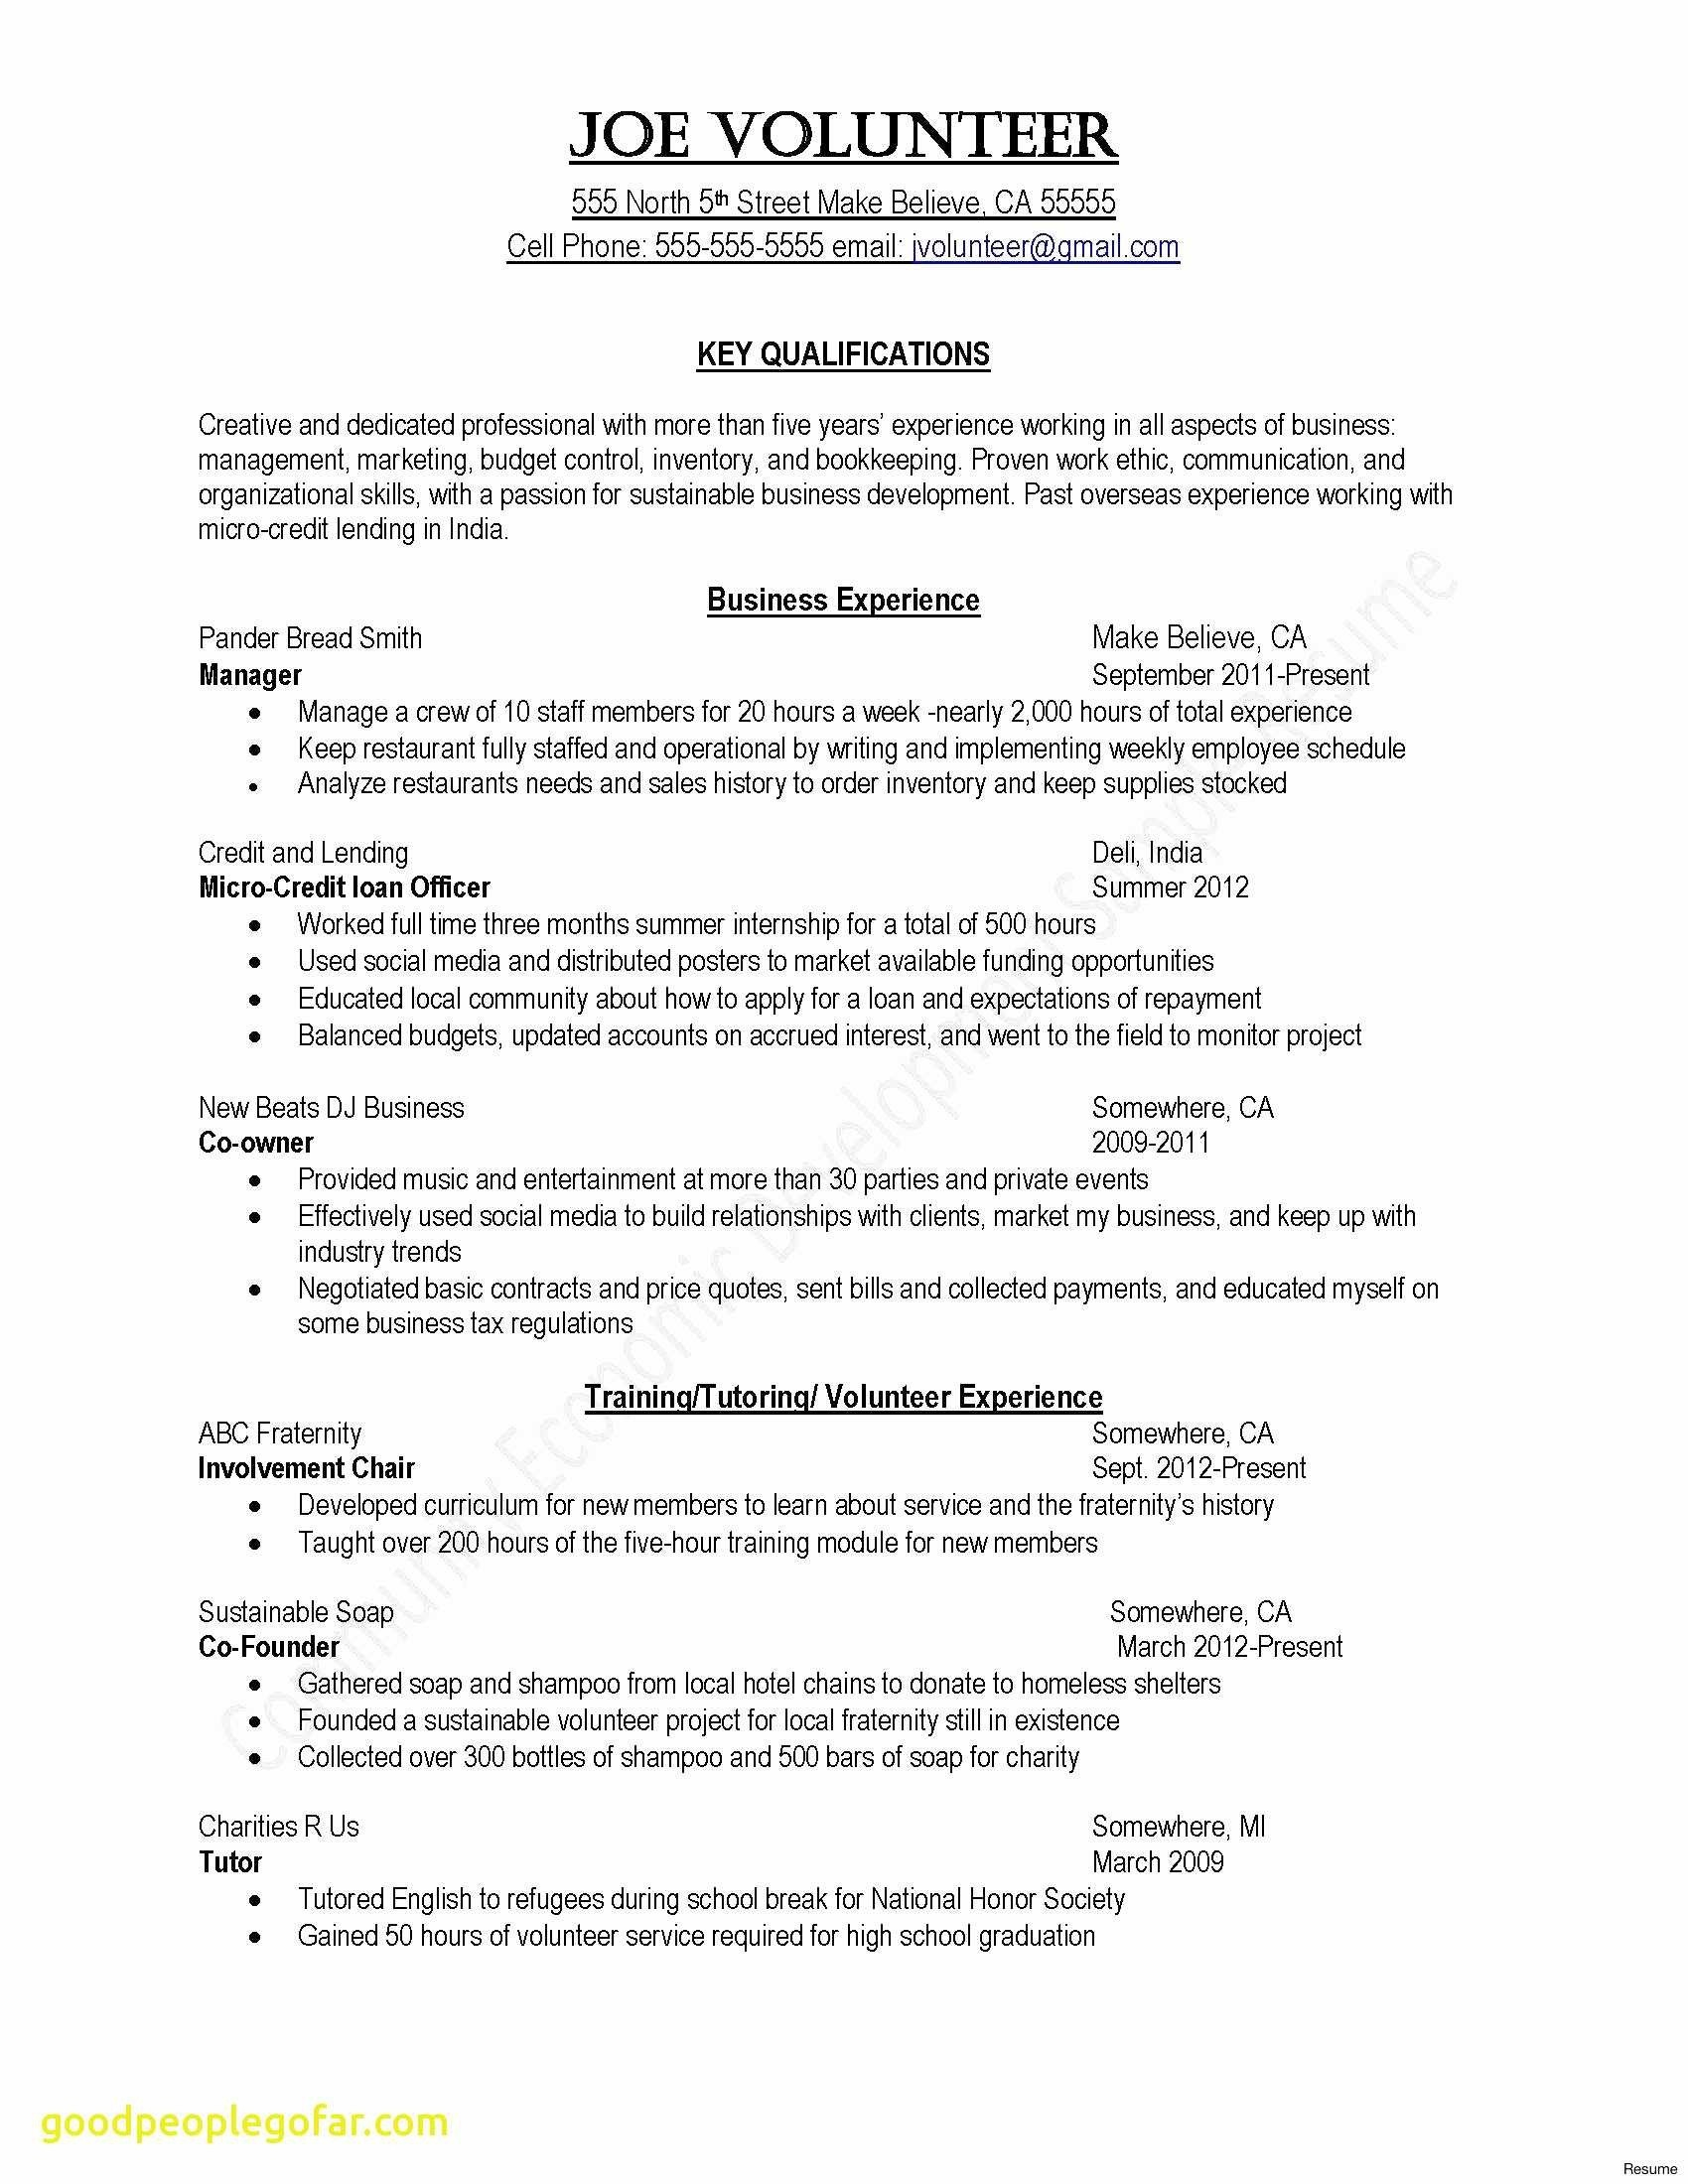 Need A Resume - Build Your Own Resume Beautiful Build Resume for Free Best I Need A